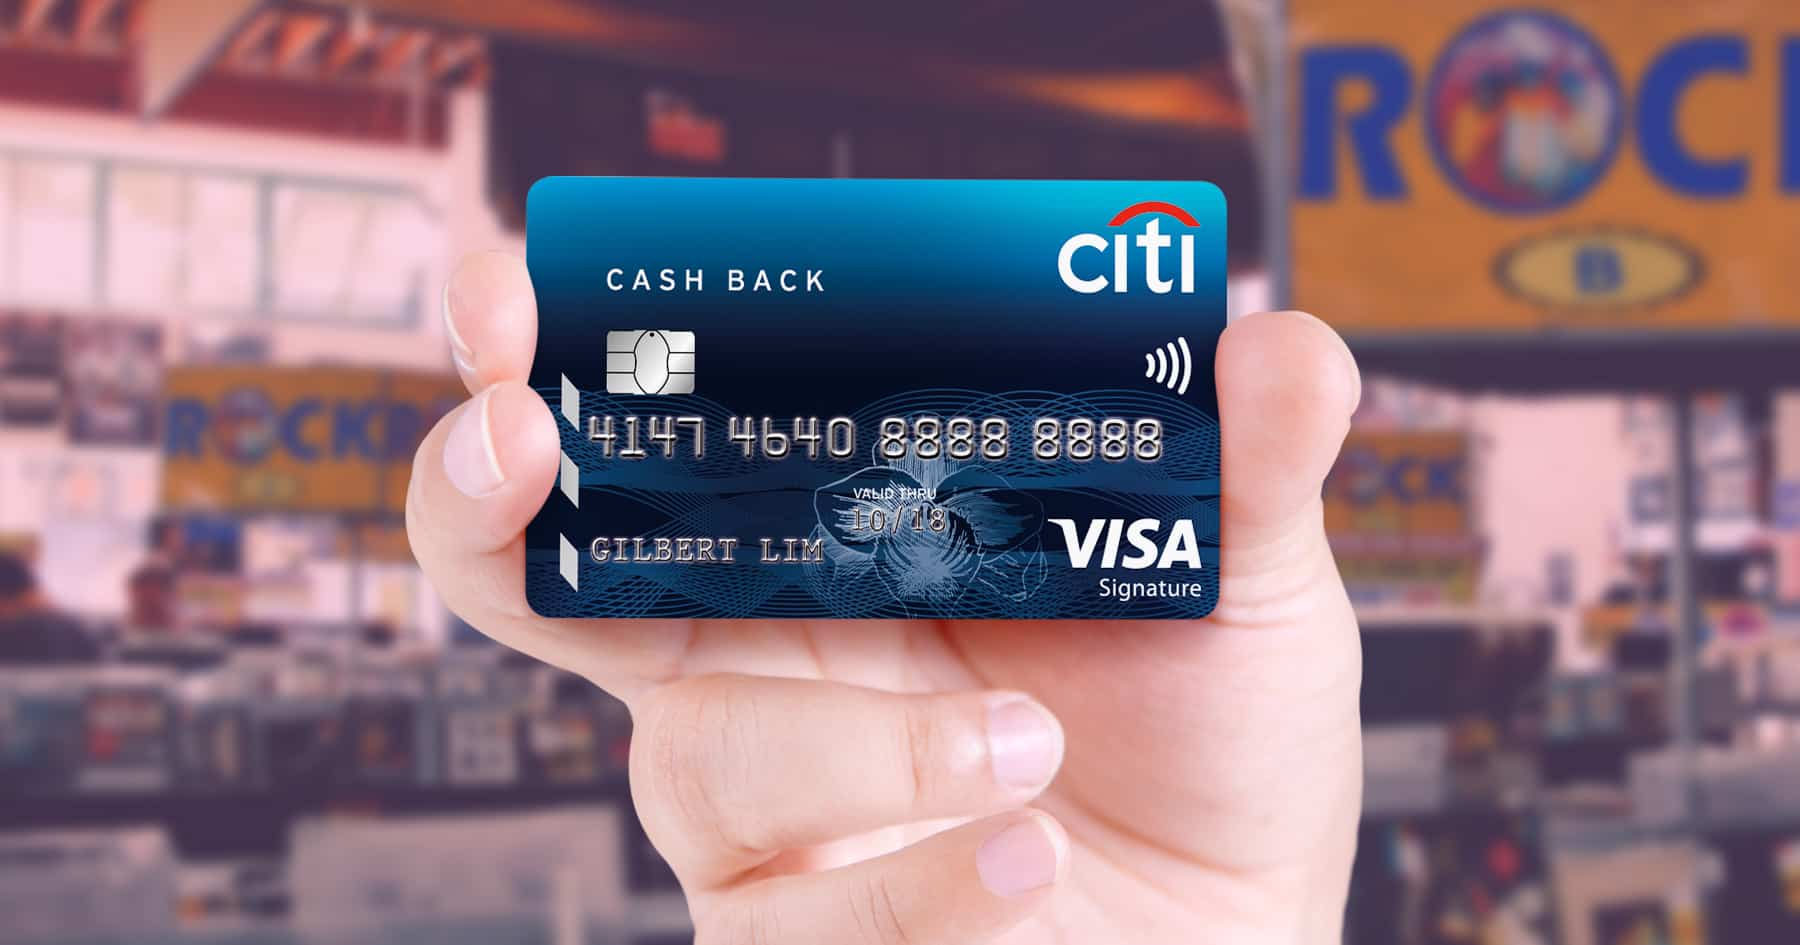 citi credit card rewards singapore